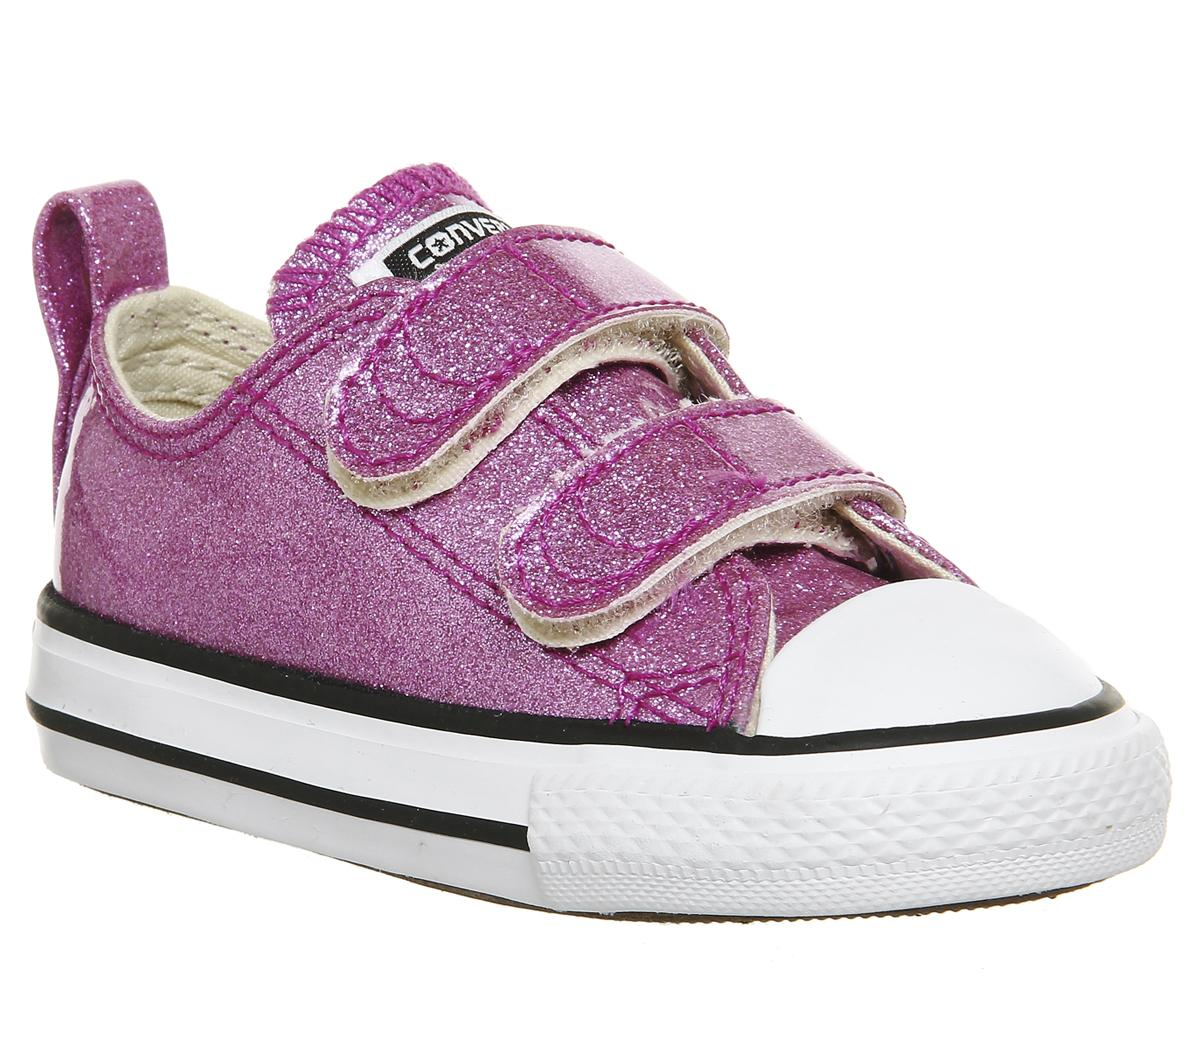 All Star 2vlace